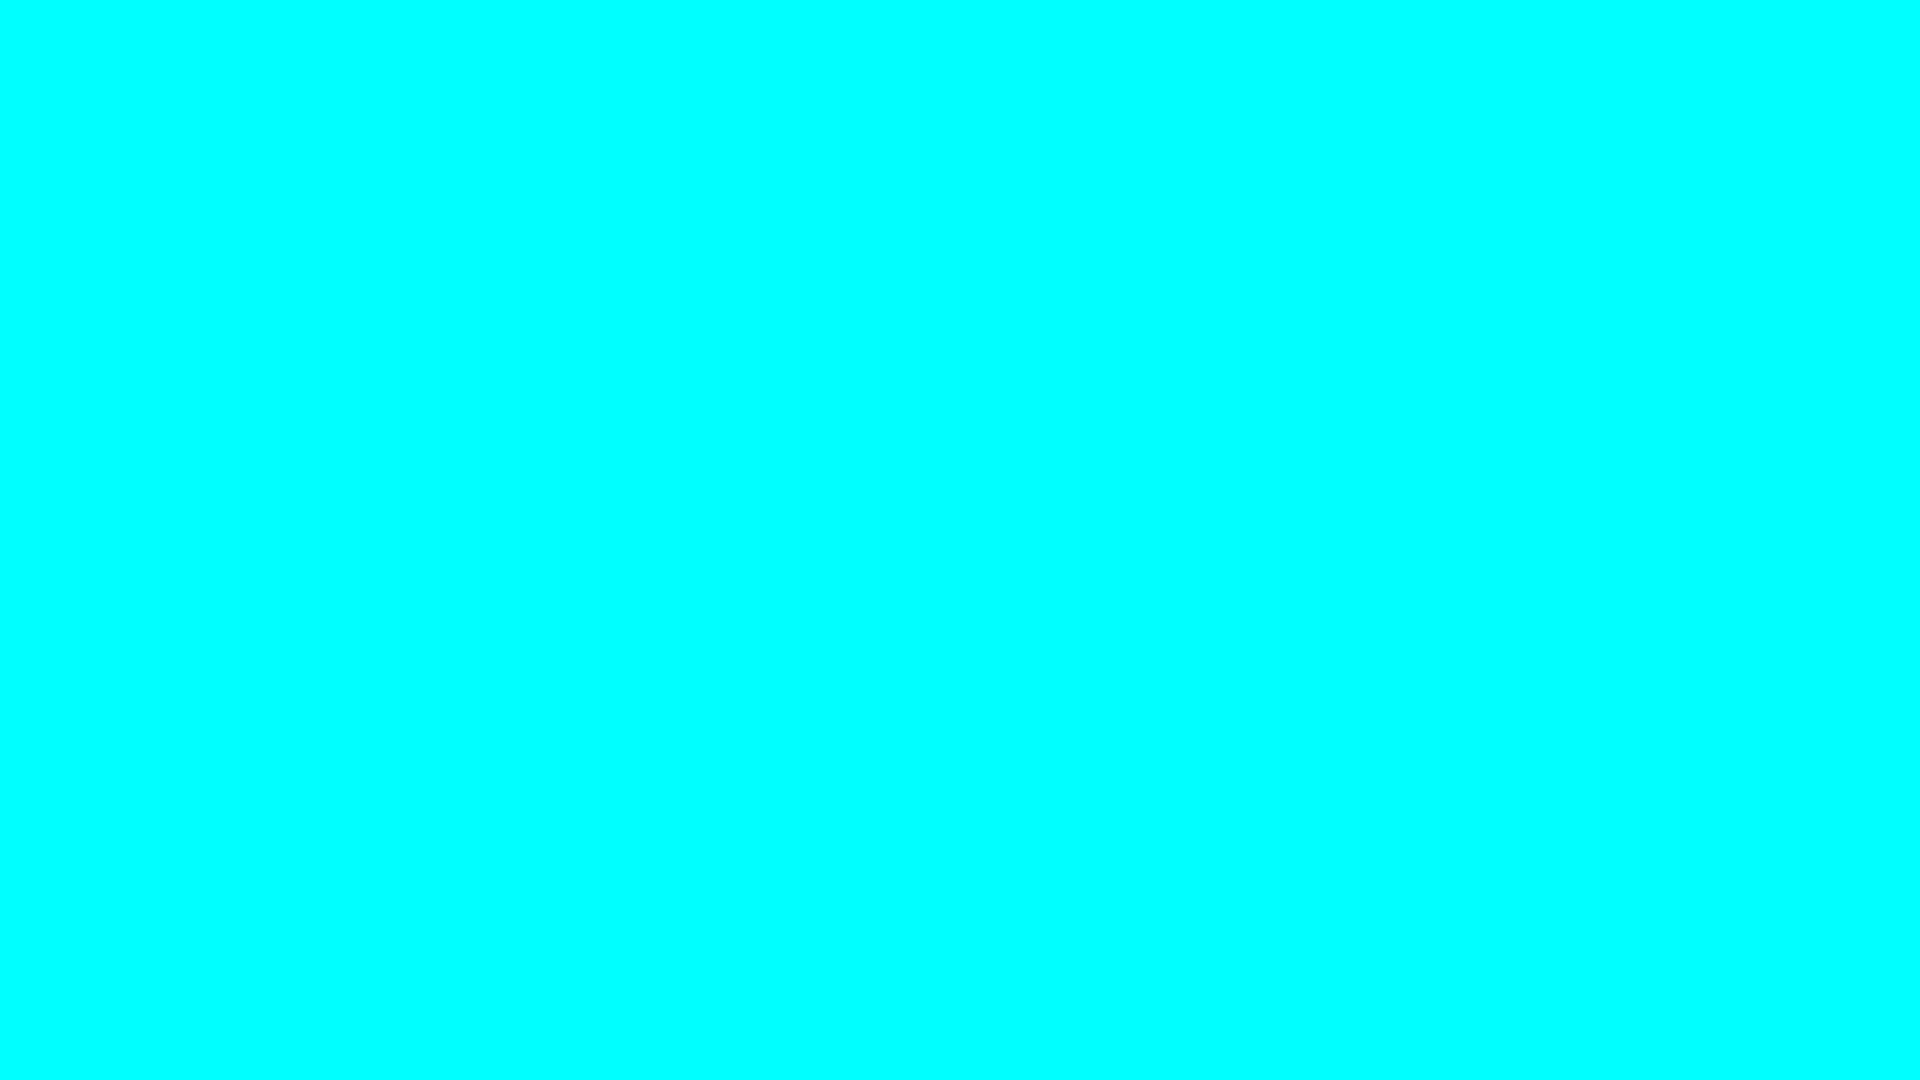 1920x1080 Cyan Solid Color Background